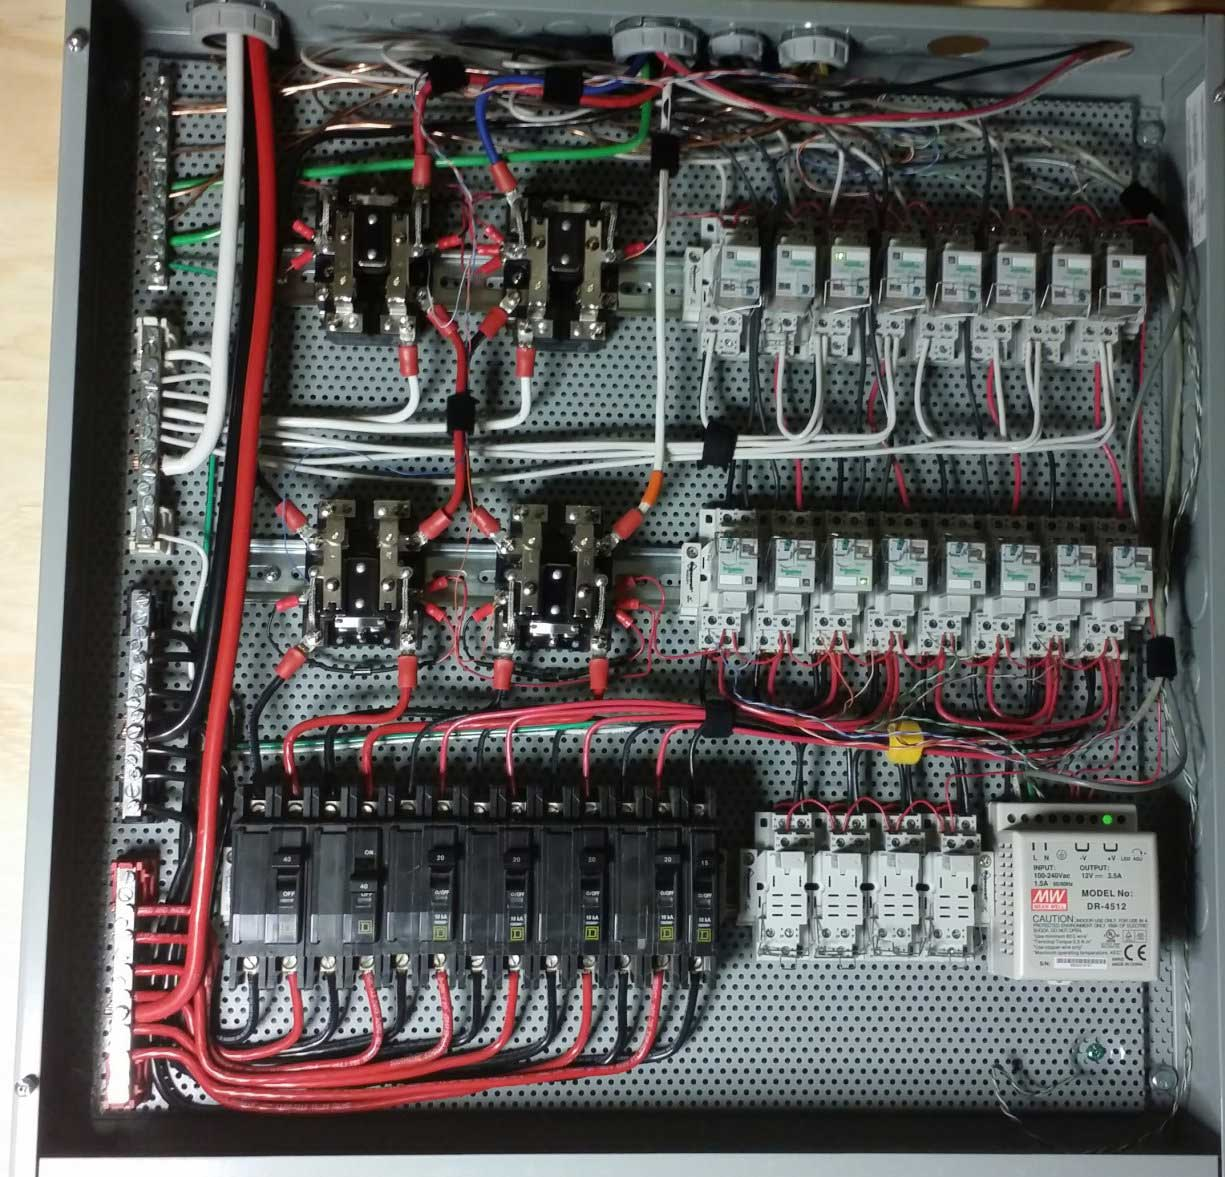 hight resolution of larger image example breaker subpanel image shows a subpanel with circuit breakers mounted on din rails ordinary wire gauge will work with either ac or